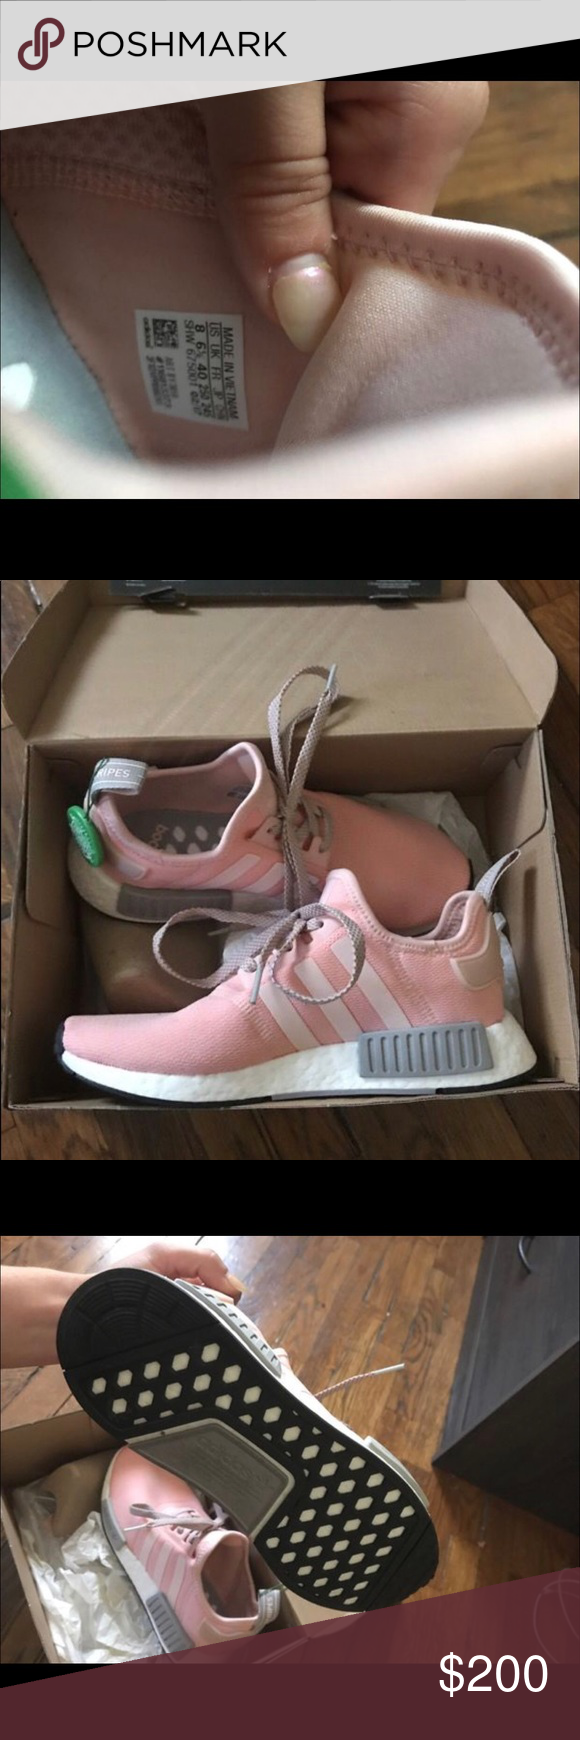 577c1f0f0 Women s Adidas NMD Size 8. Bought the wrong size. Never been worn. adidas